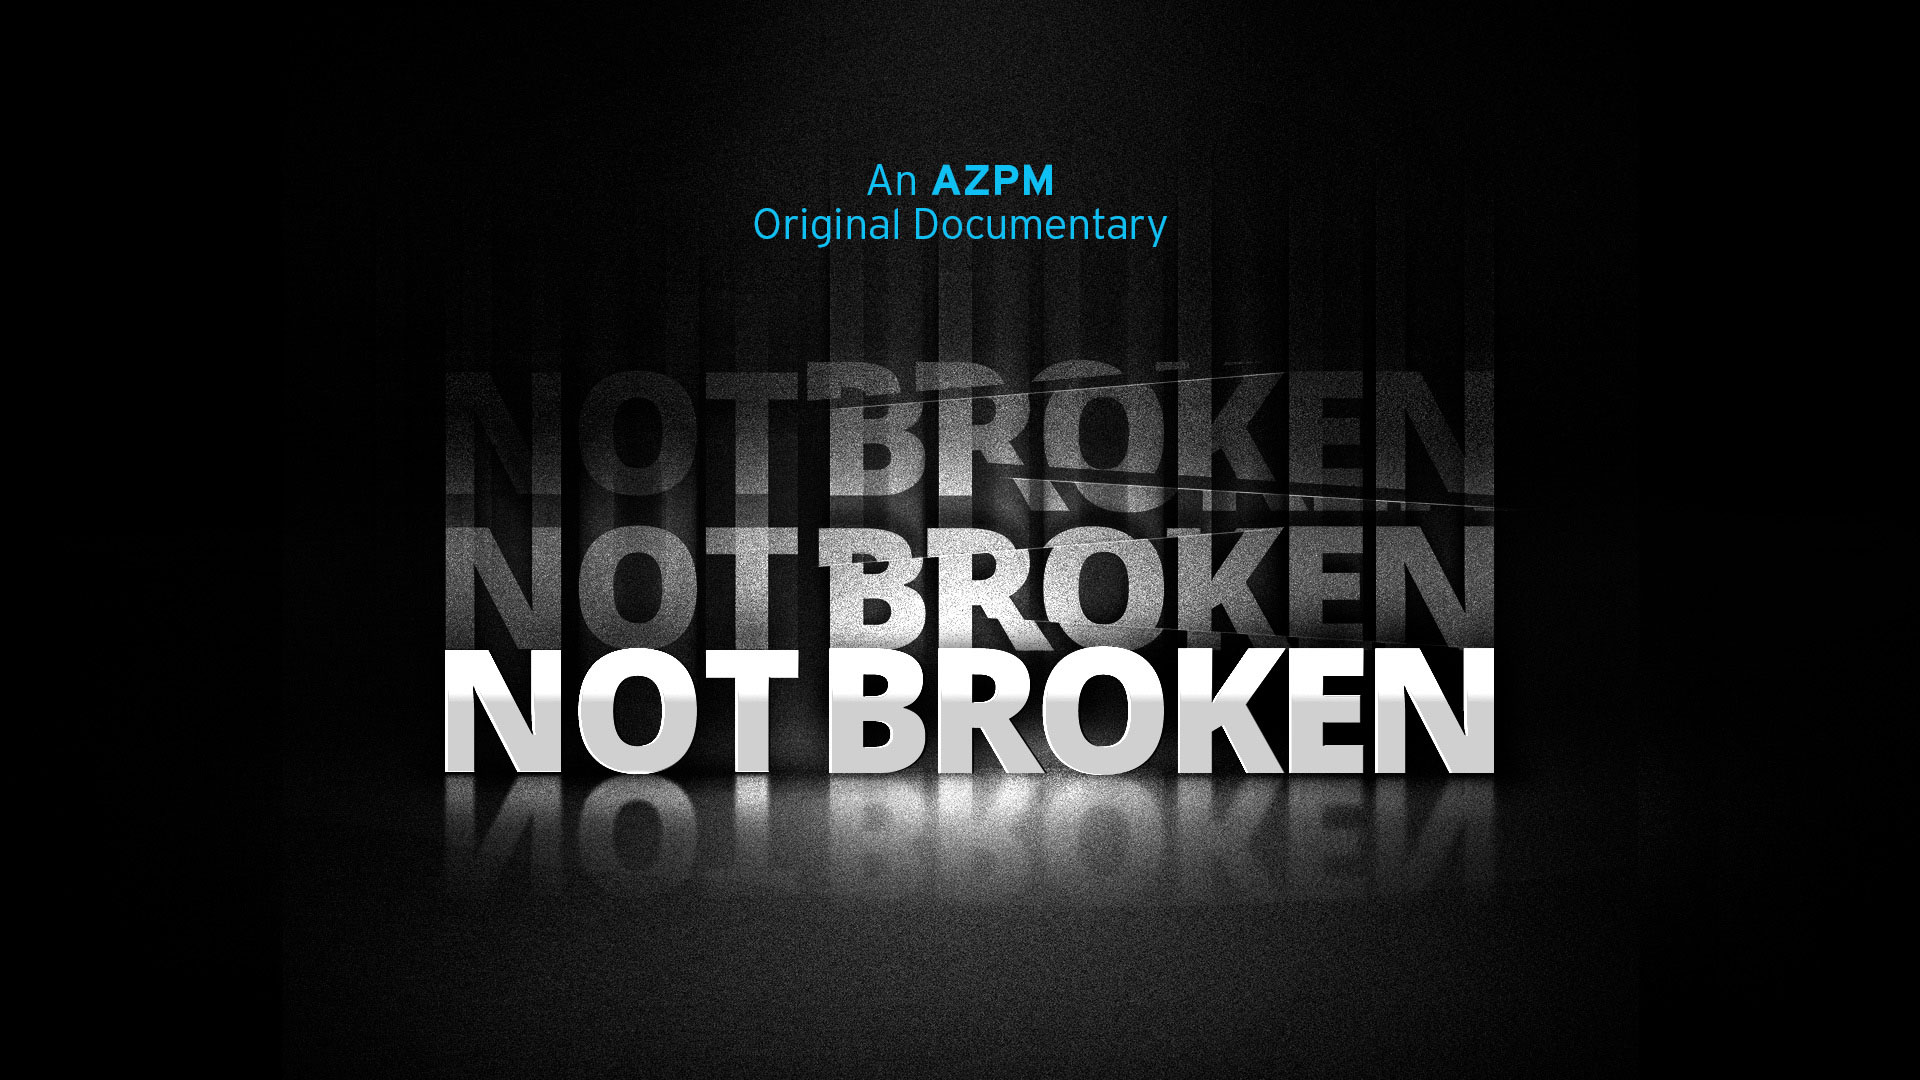 'Not Broken' premieres on October 30 at 9:00pm on PBS 6.